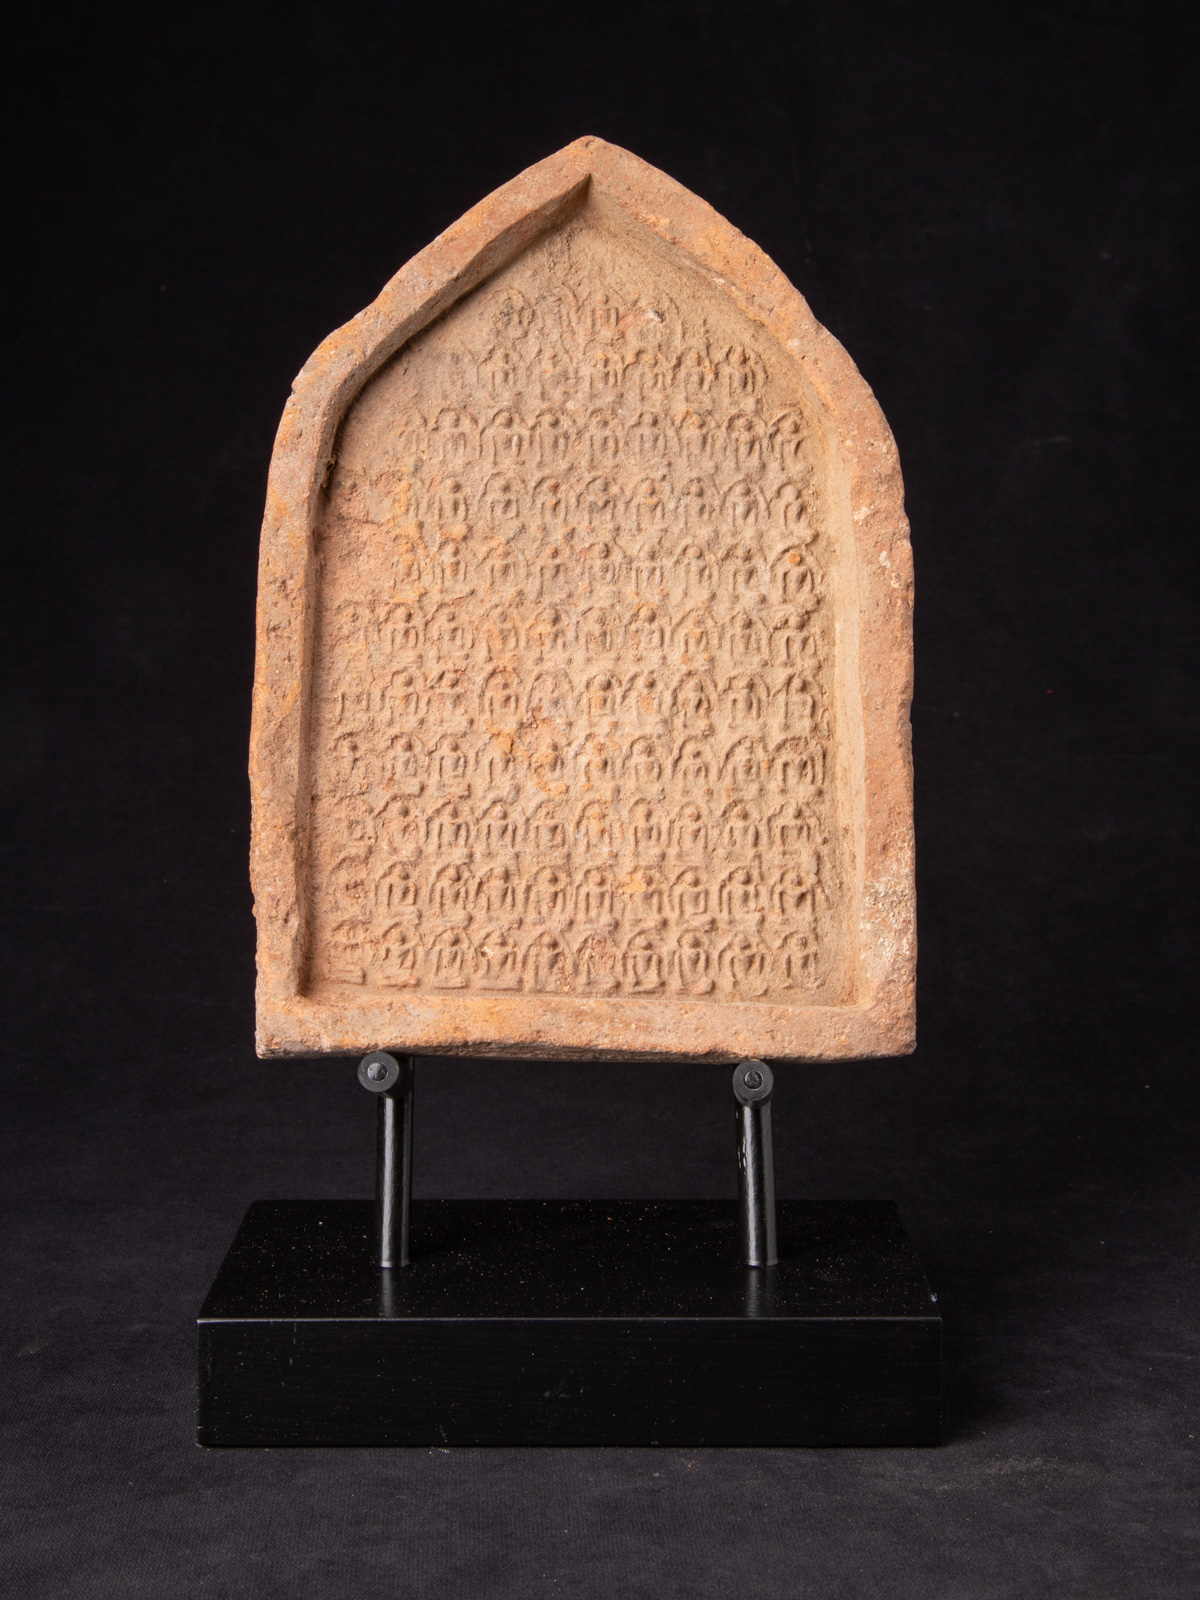 12th century Pagan Votive Tablet from Burma